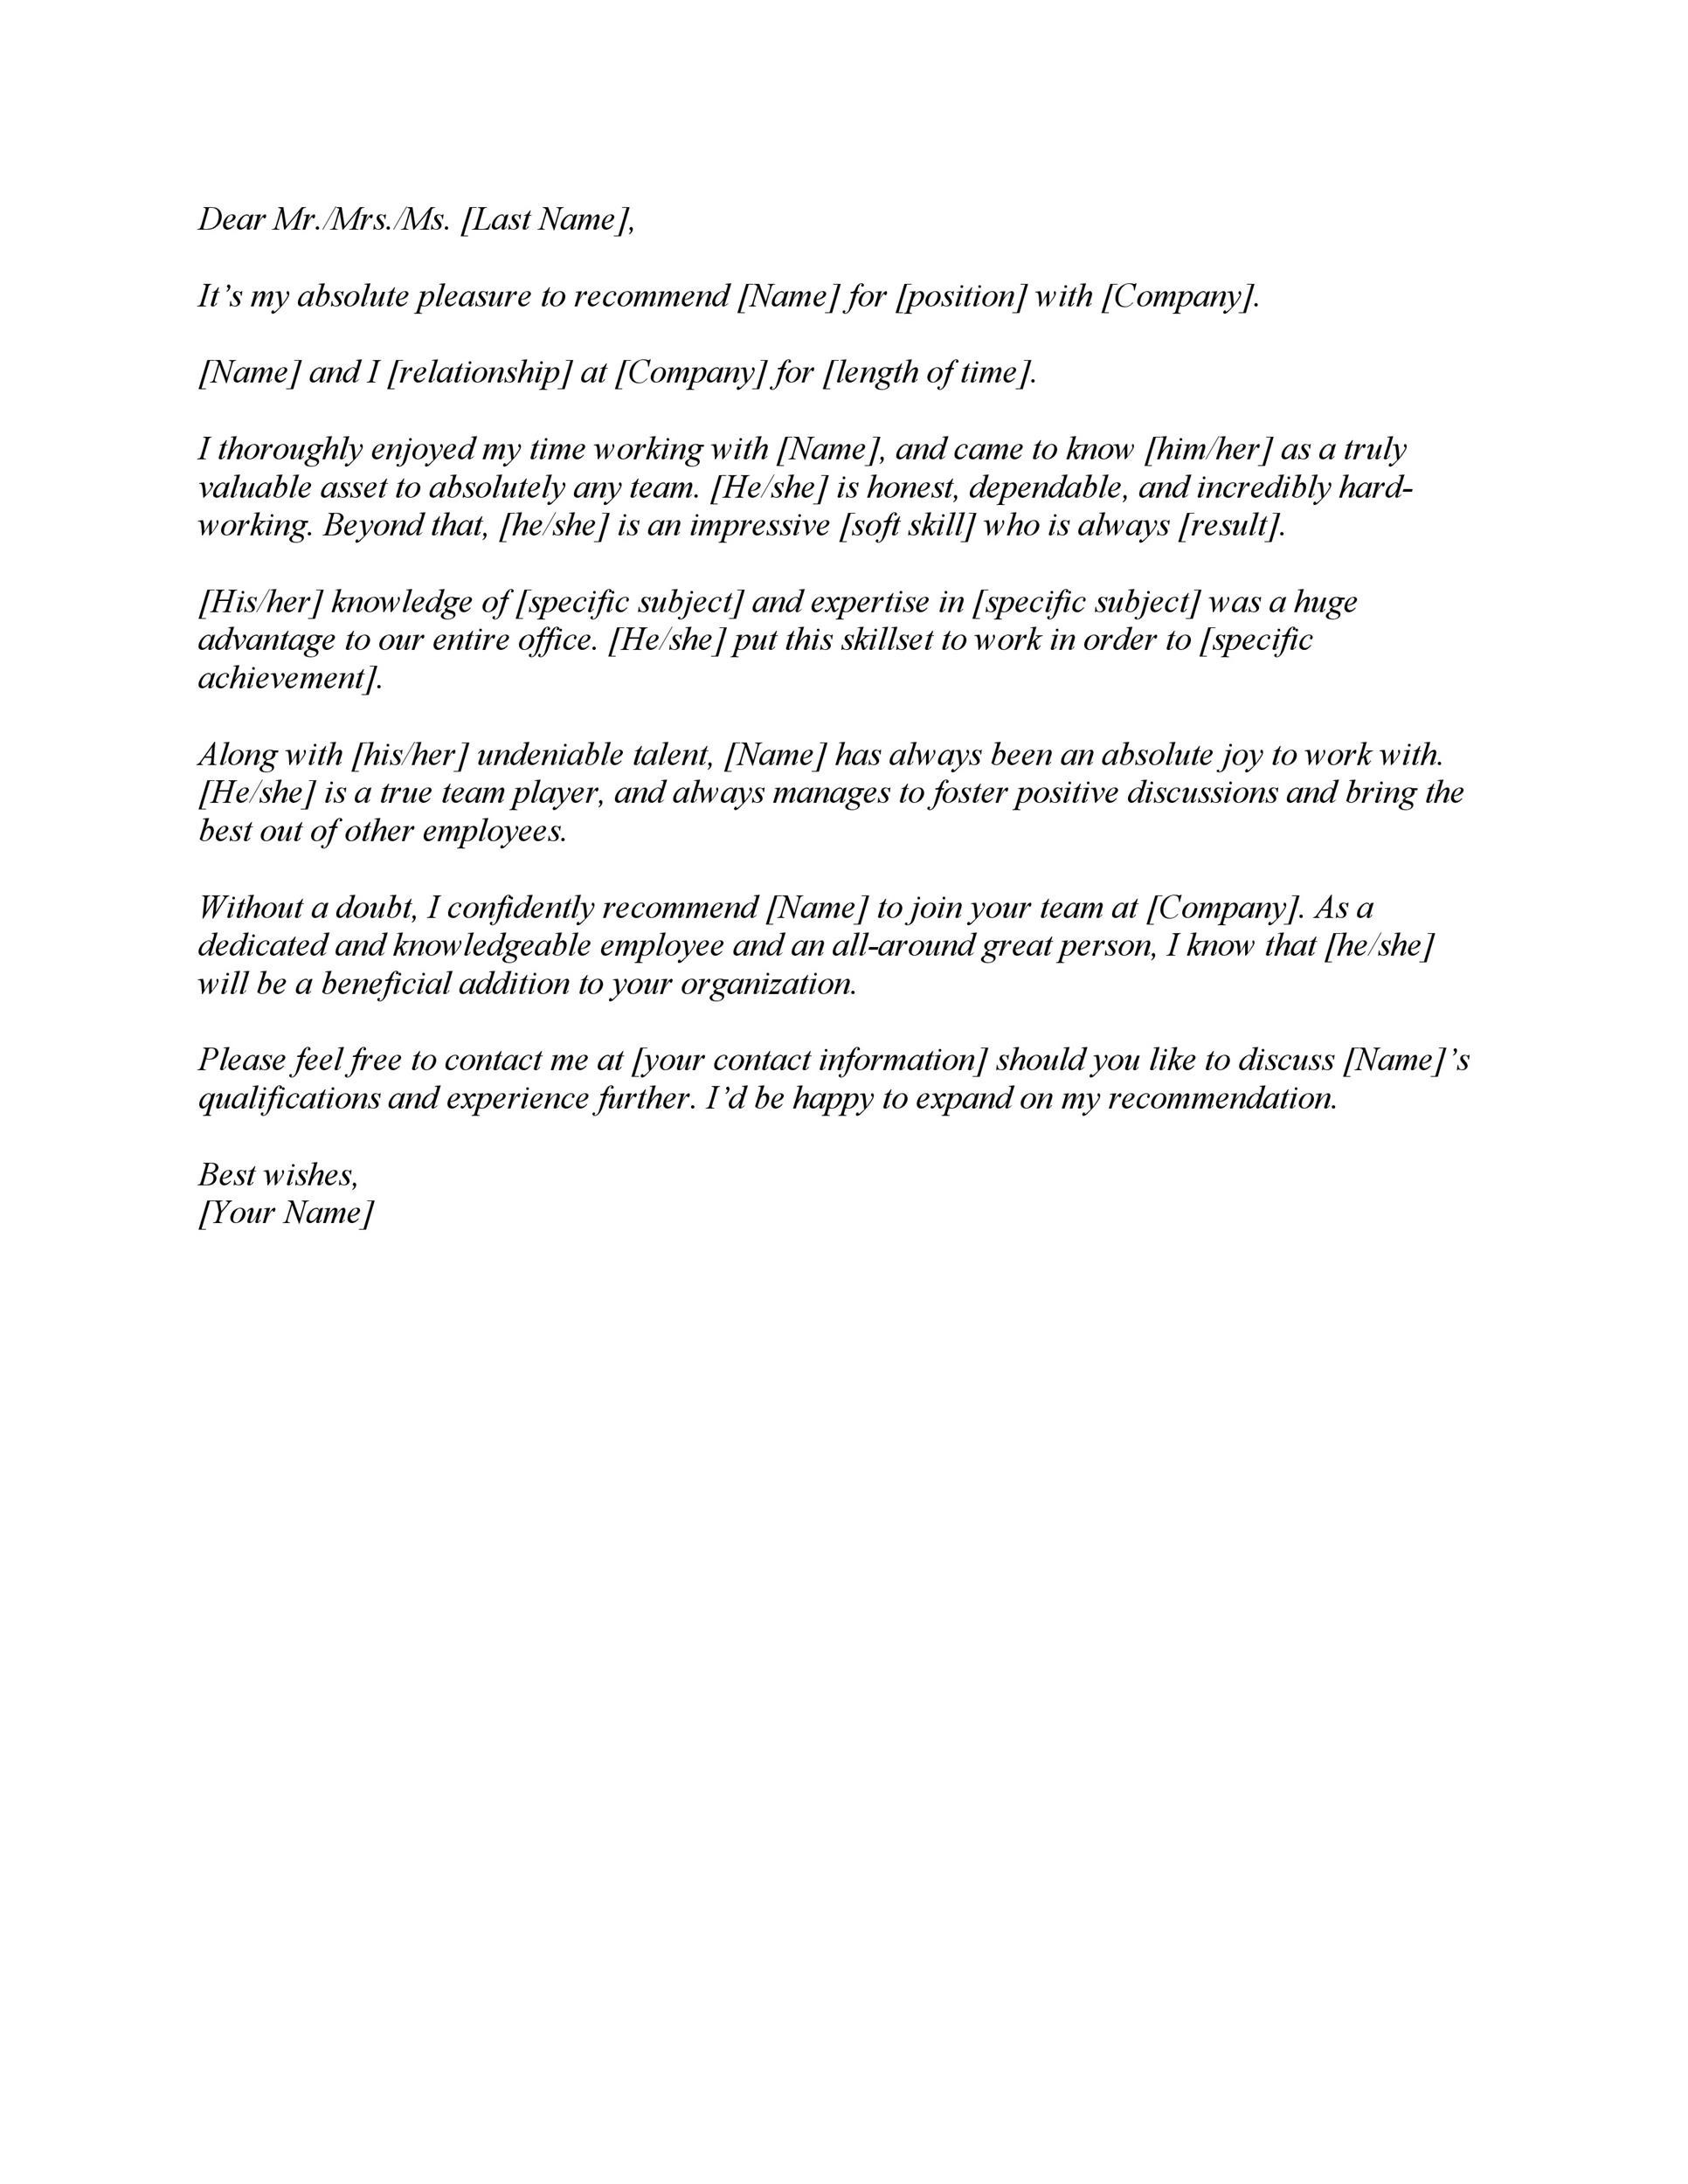 FREE Letter Of Recommendation Templates Samples - Sample letter of recommendation template free